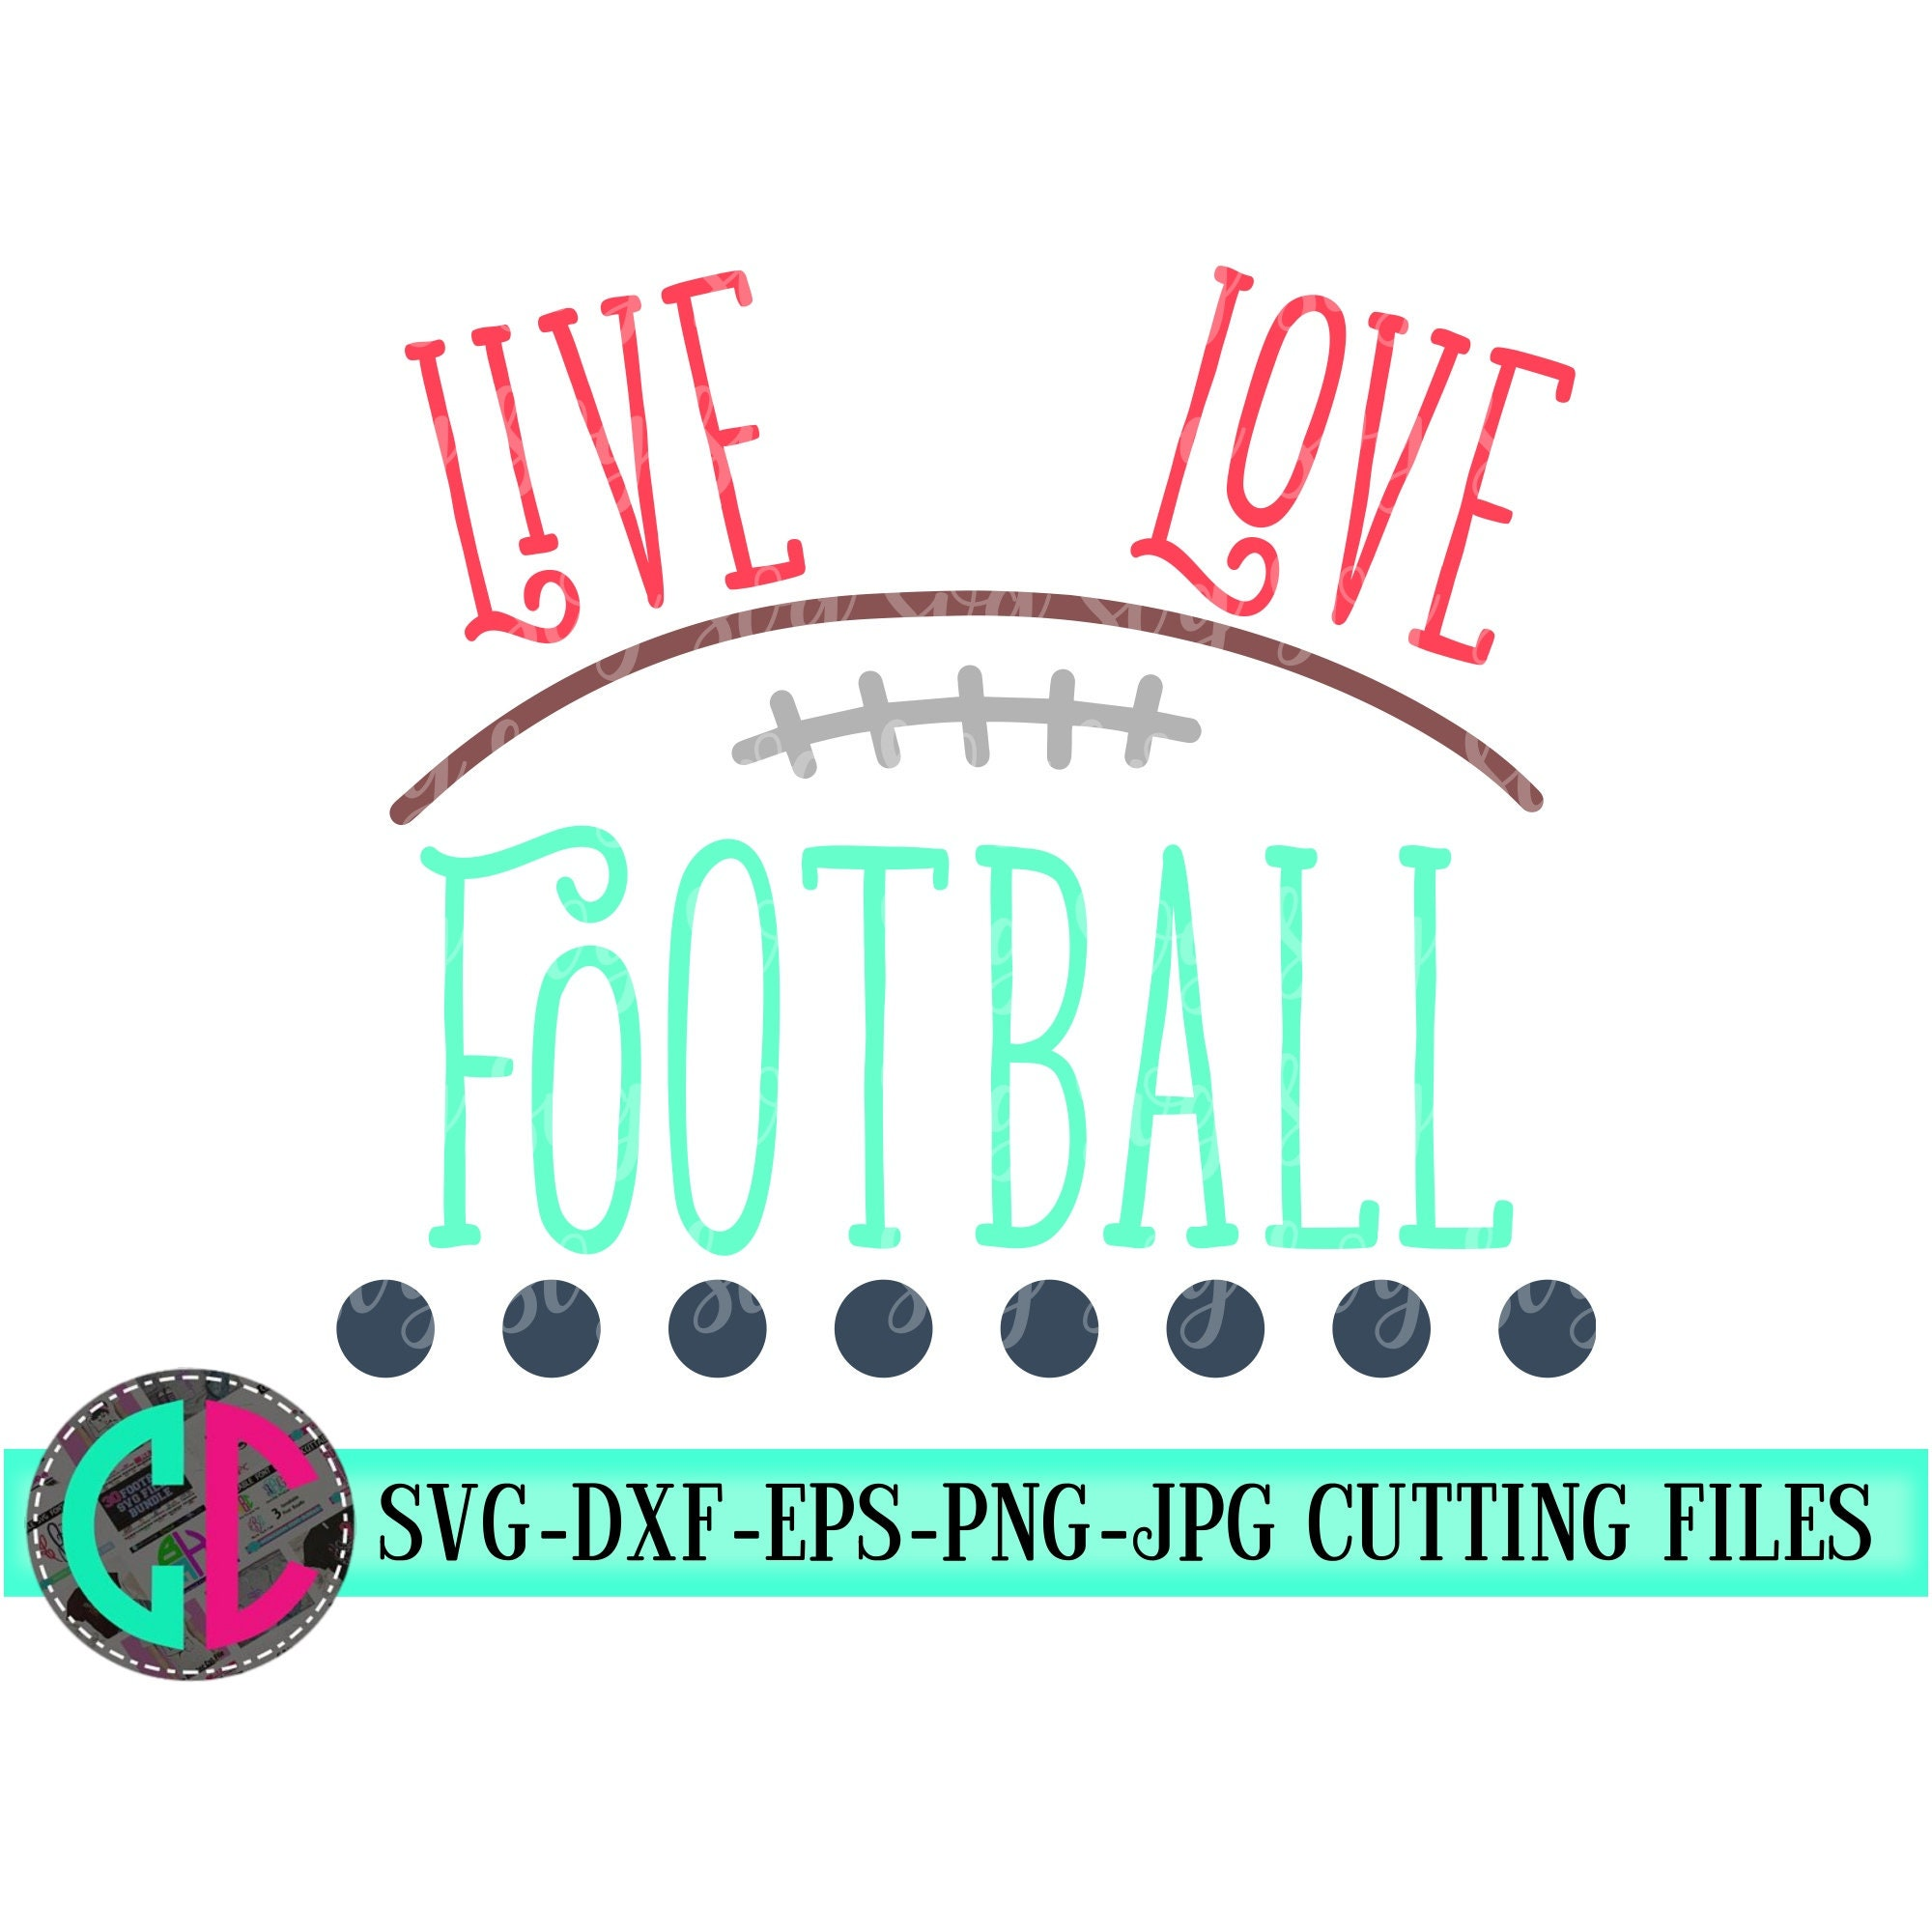 Live Love Football Outline Svg Love Football Svg Football Cut File Football Svg Dxf Eps Png Football Iron On Decal Svg For Cricut